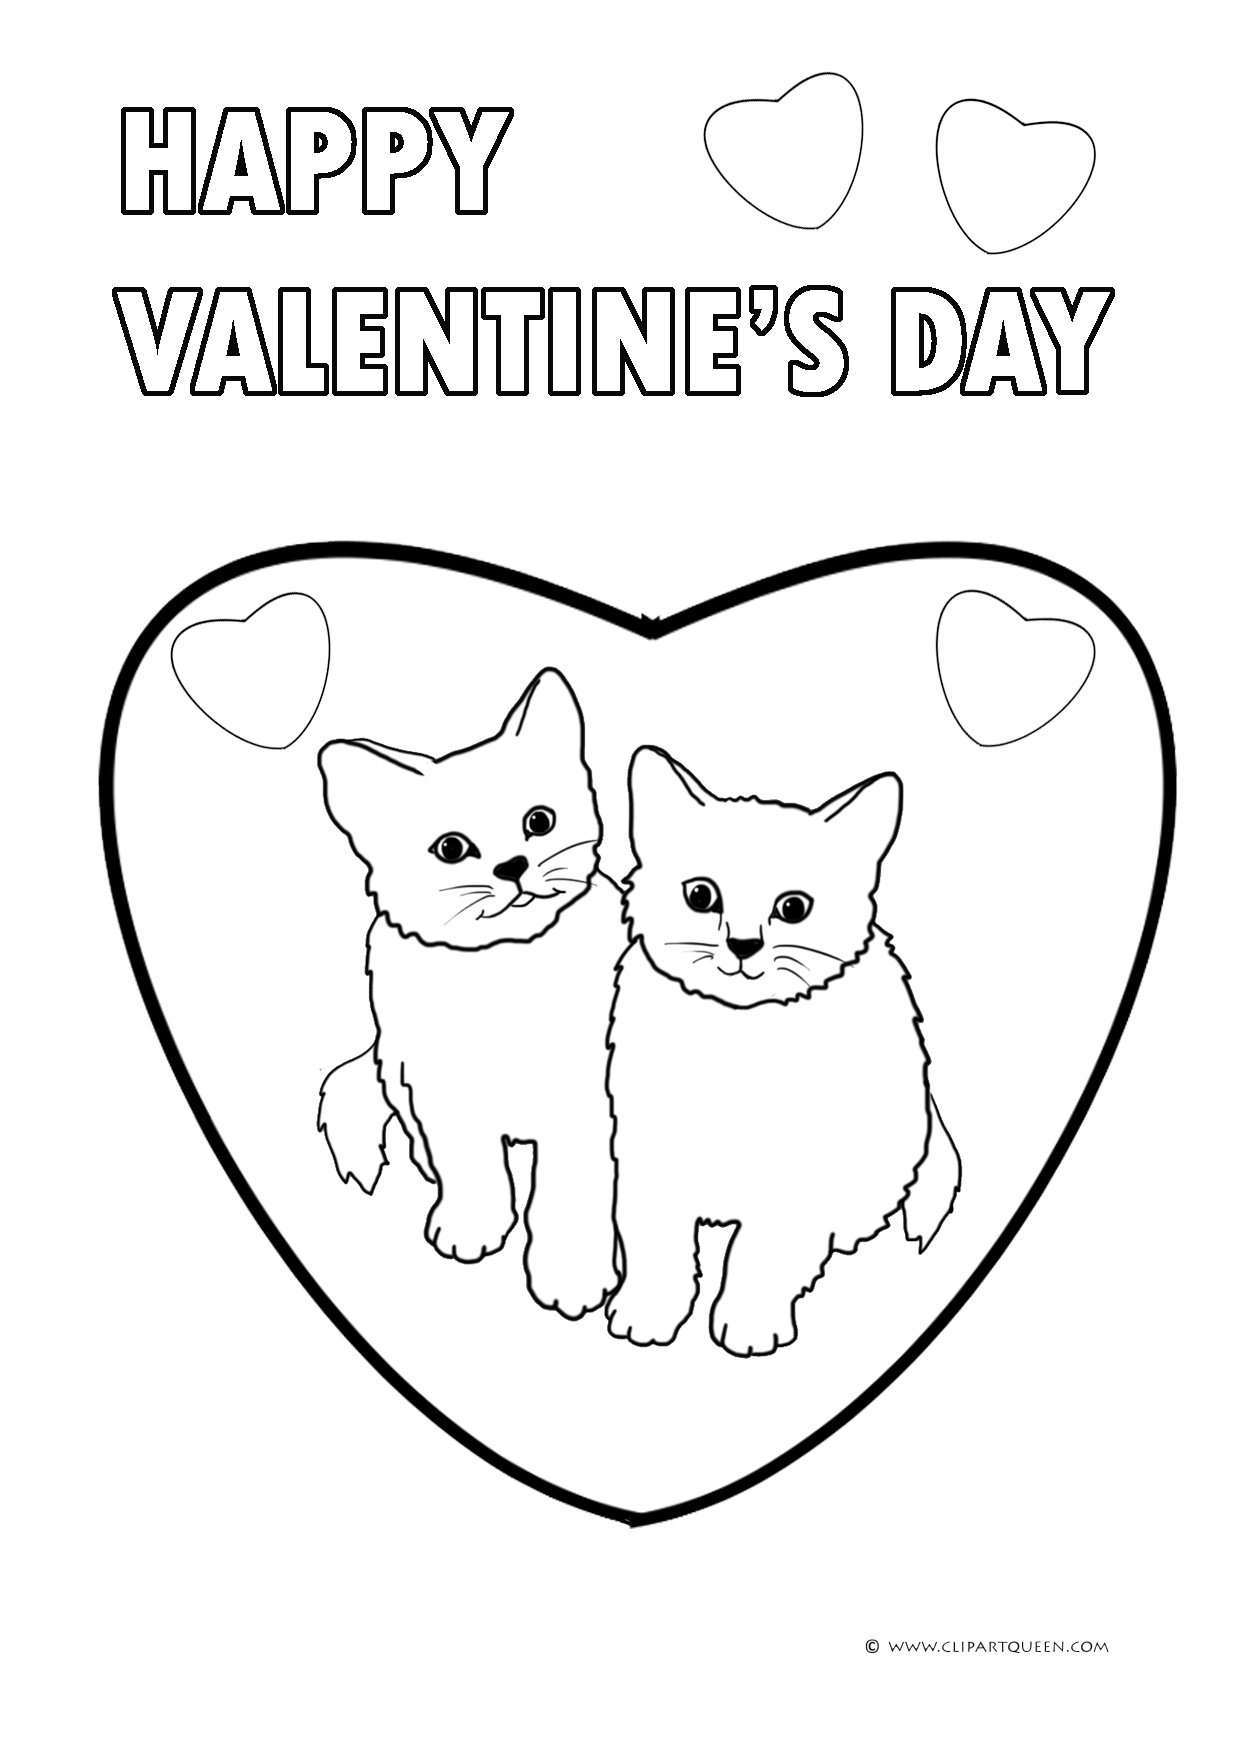 valentines day coloring pages free printable 15 valentine39s day coloring pages day coloring free valentines pages printable